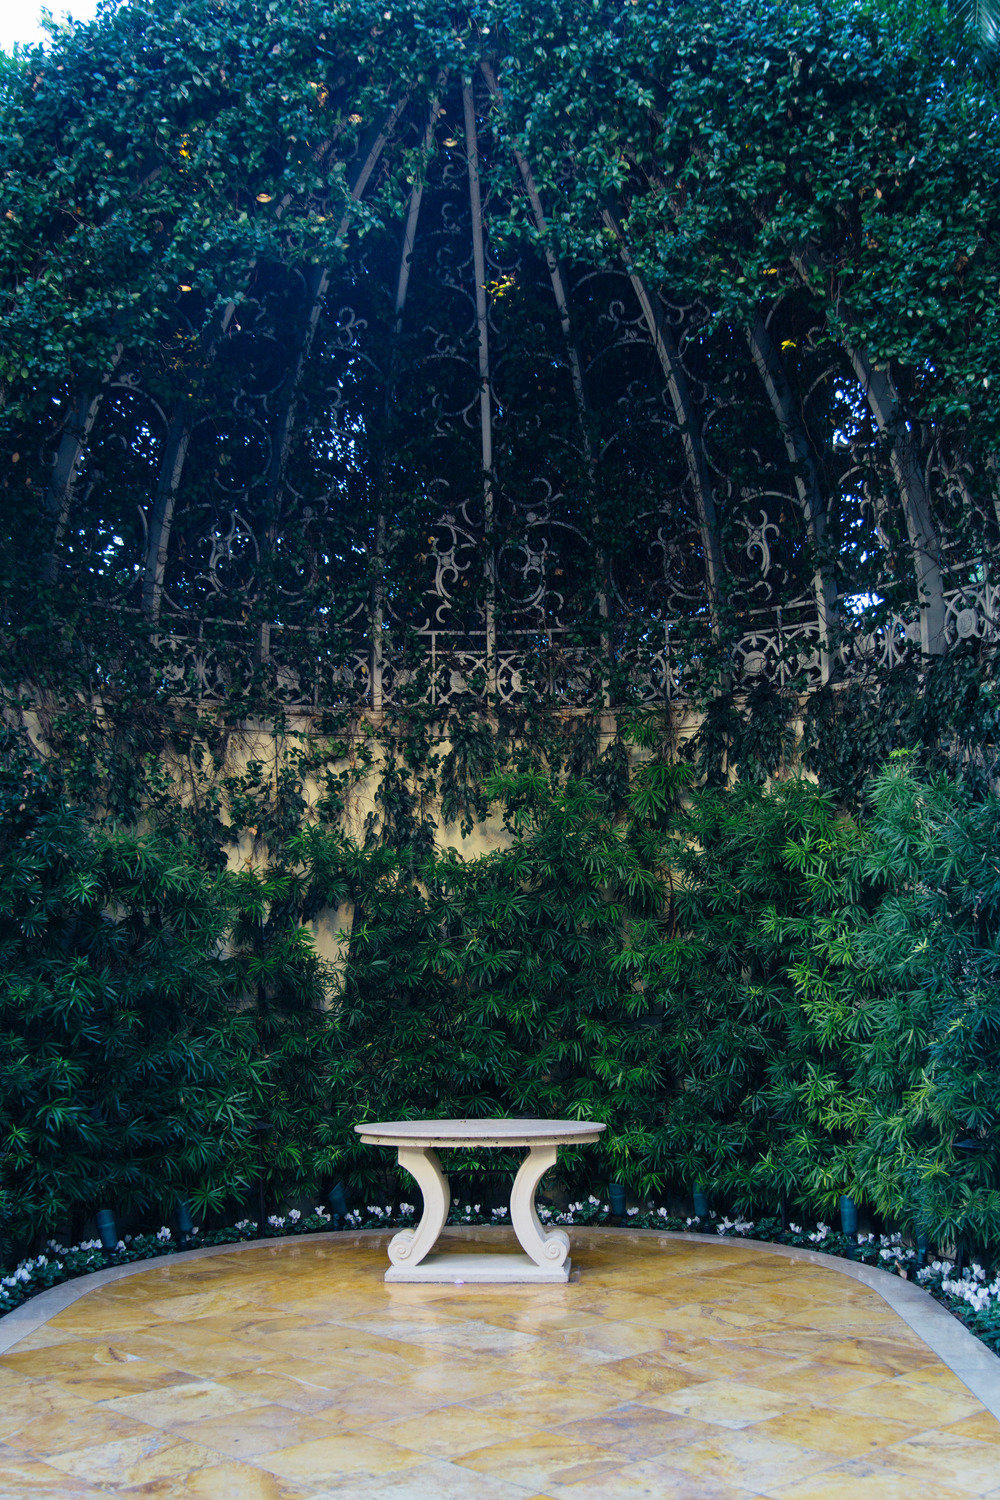 Wynn Hotel's wedding venue, garden, rotunda | Photographer: Tori Aston